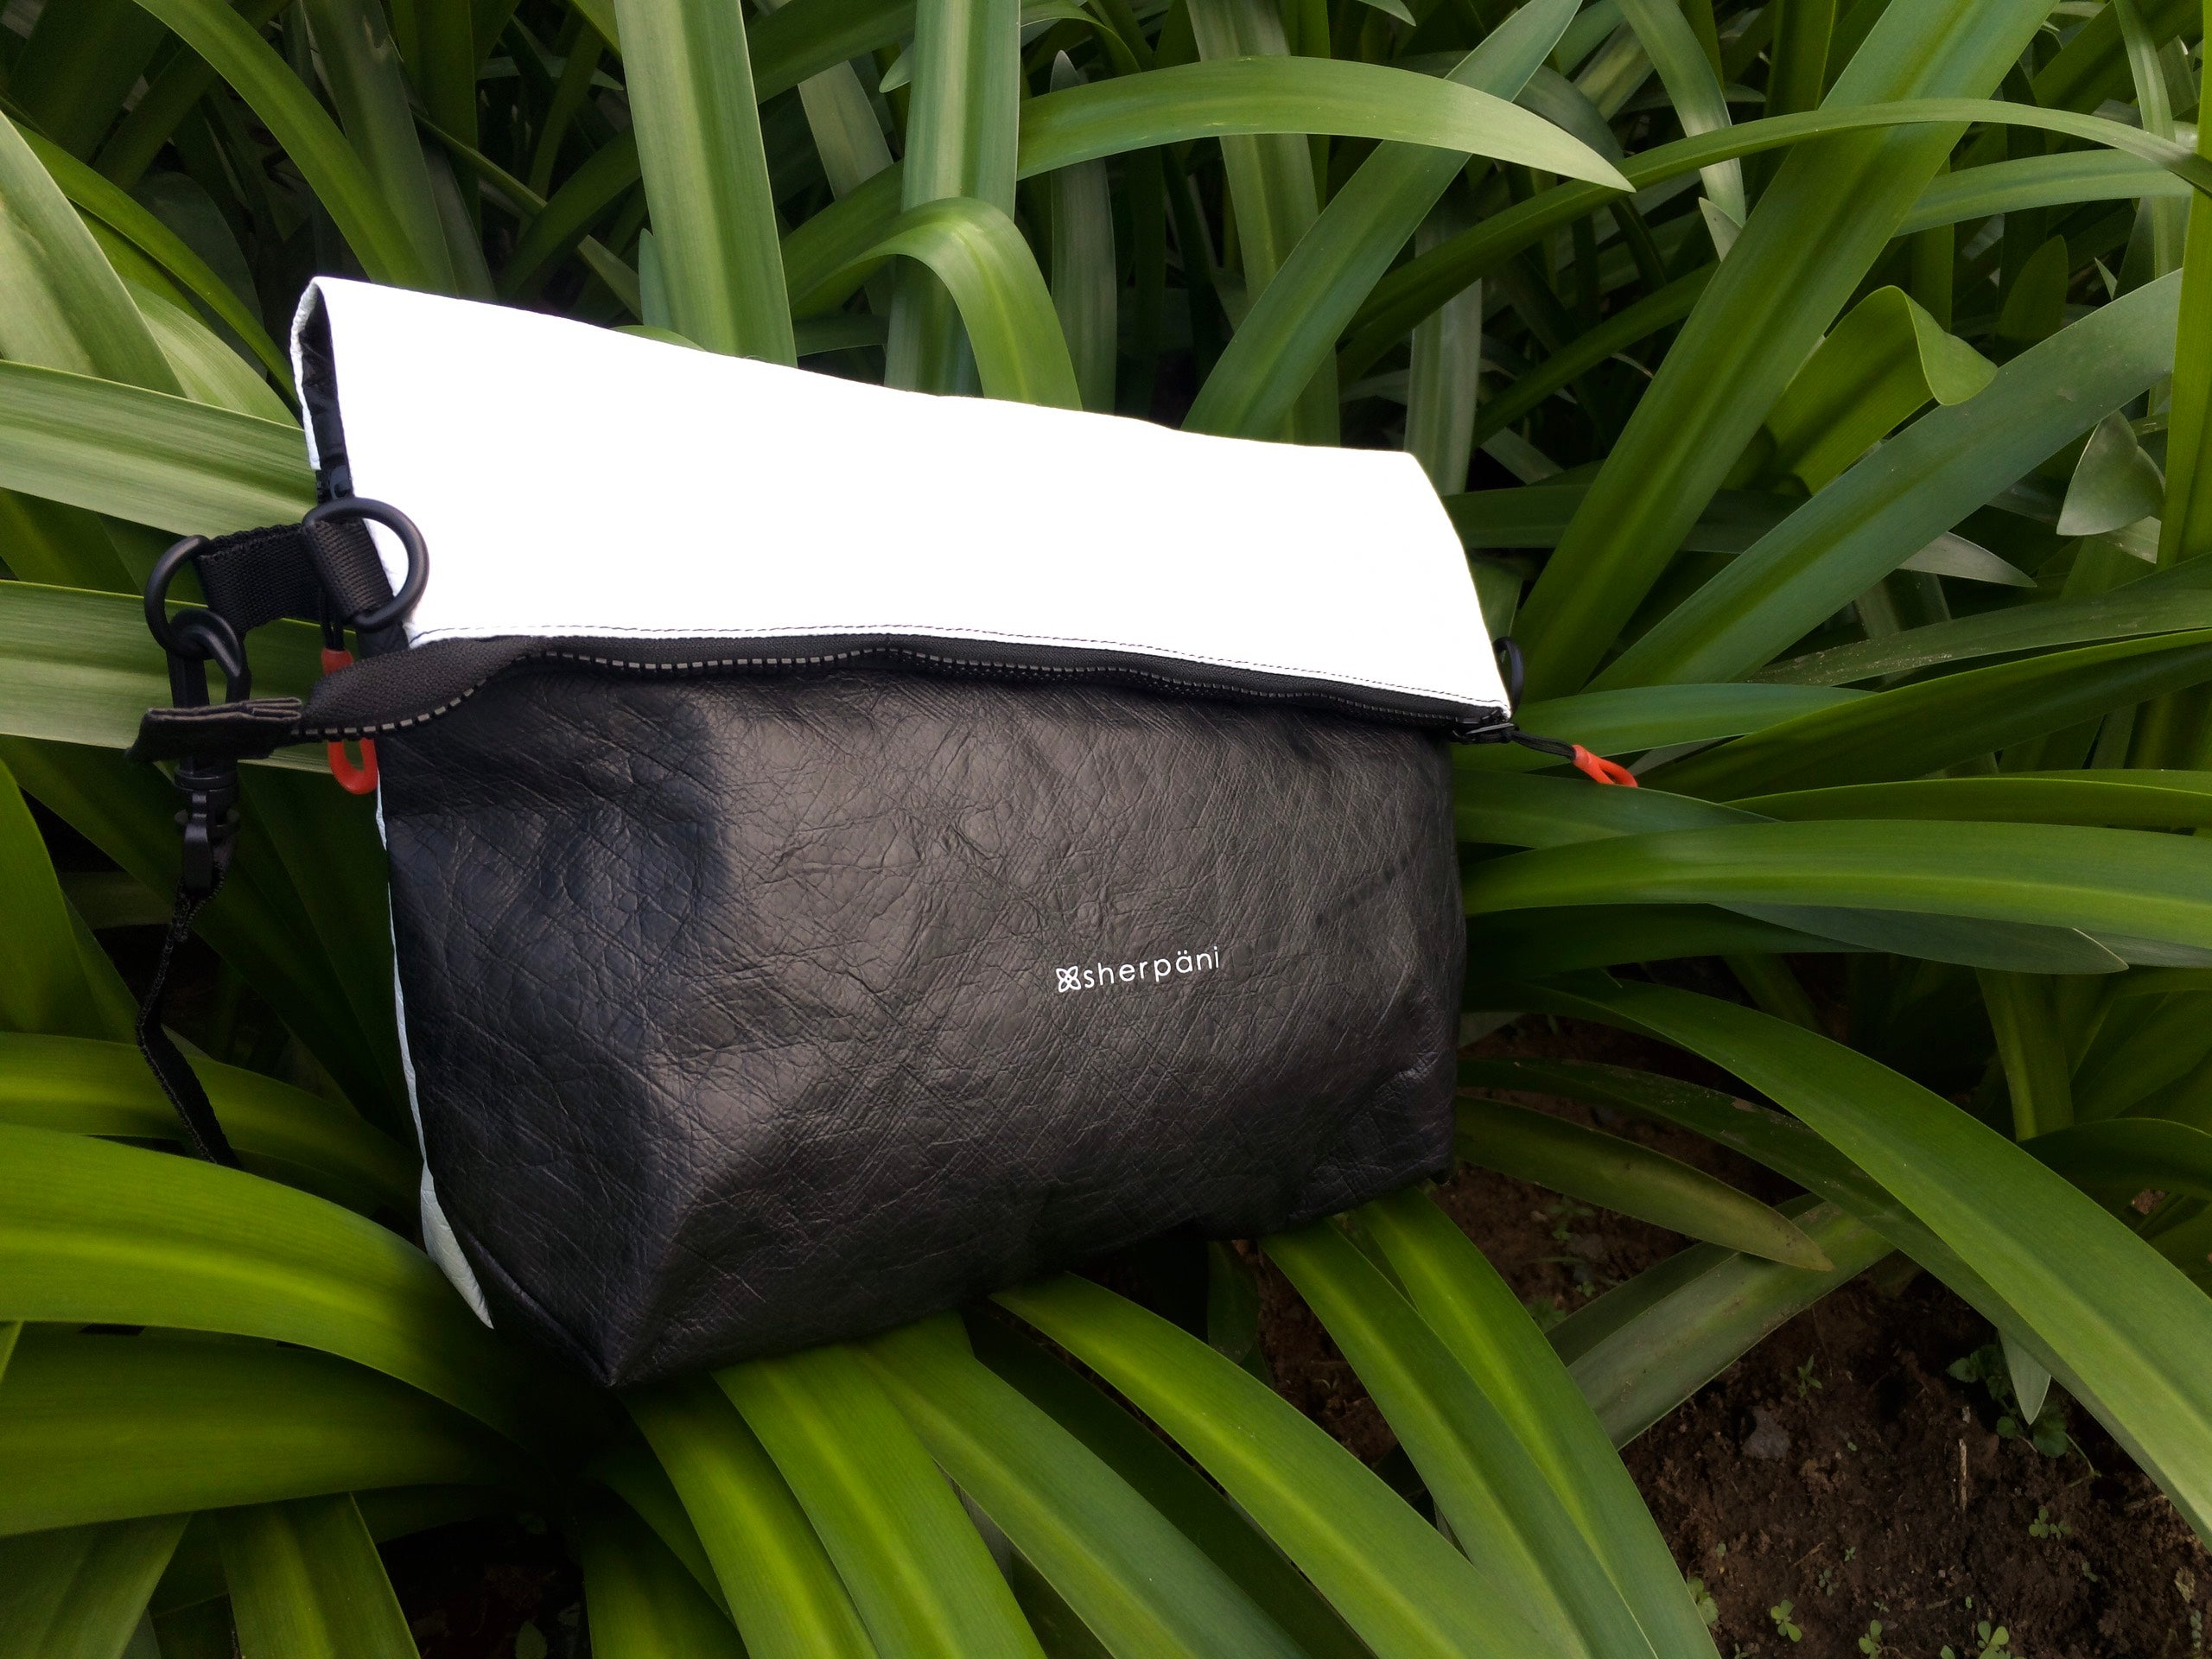 Black & White Reversible Crossbody bag  made with tyvek fabric